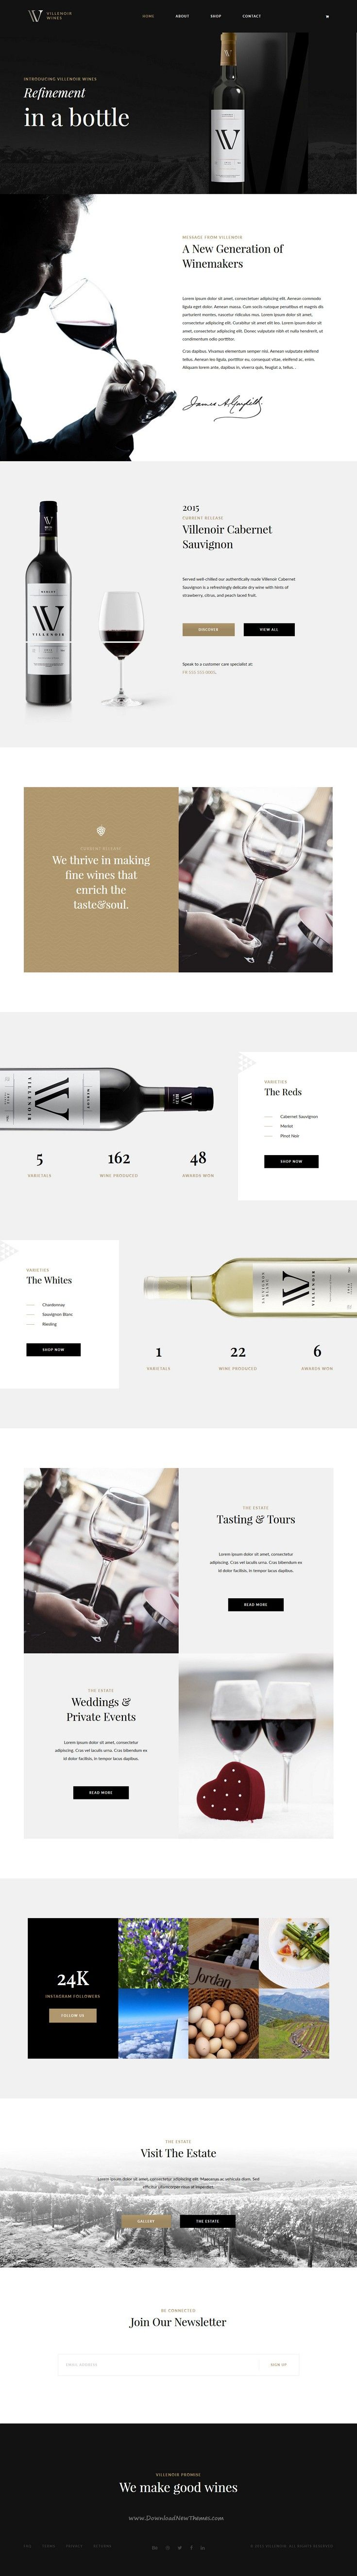 Villenoir is beautifully crafted WordPress theme best suitable for #vineyard, #winery and #wine #websites.